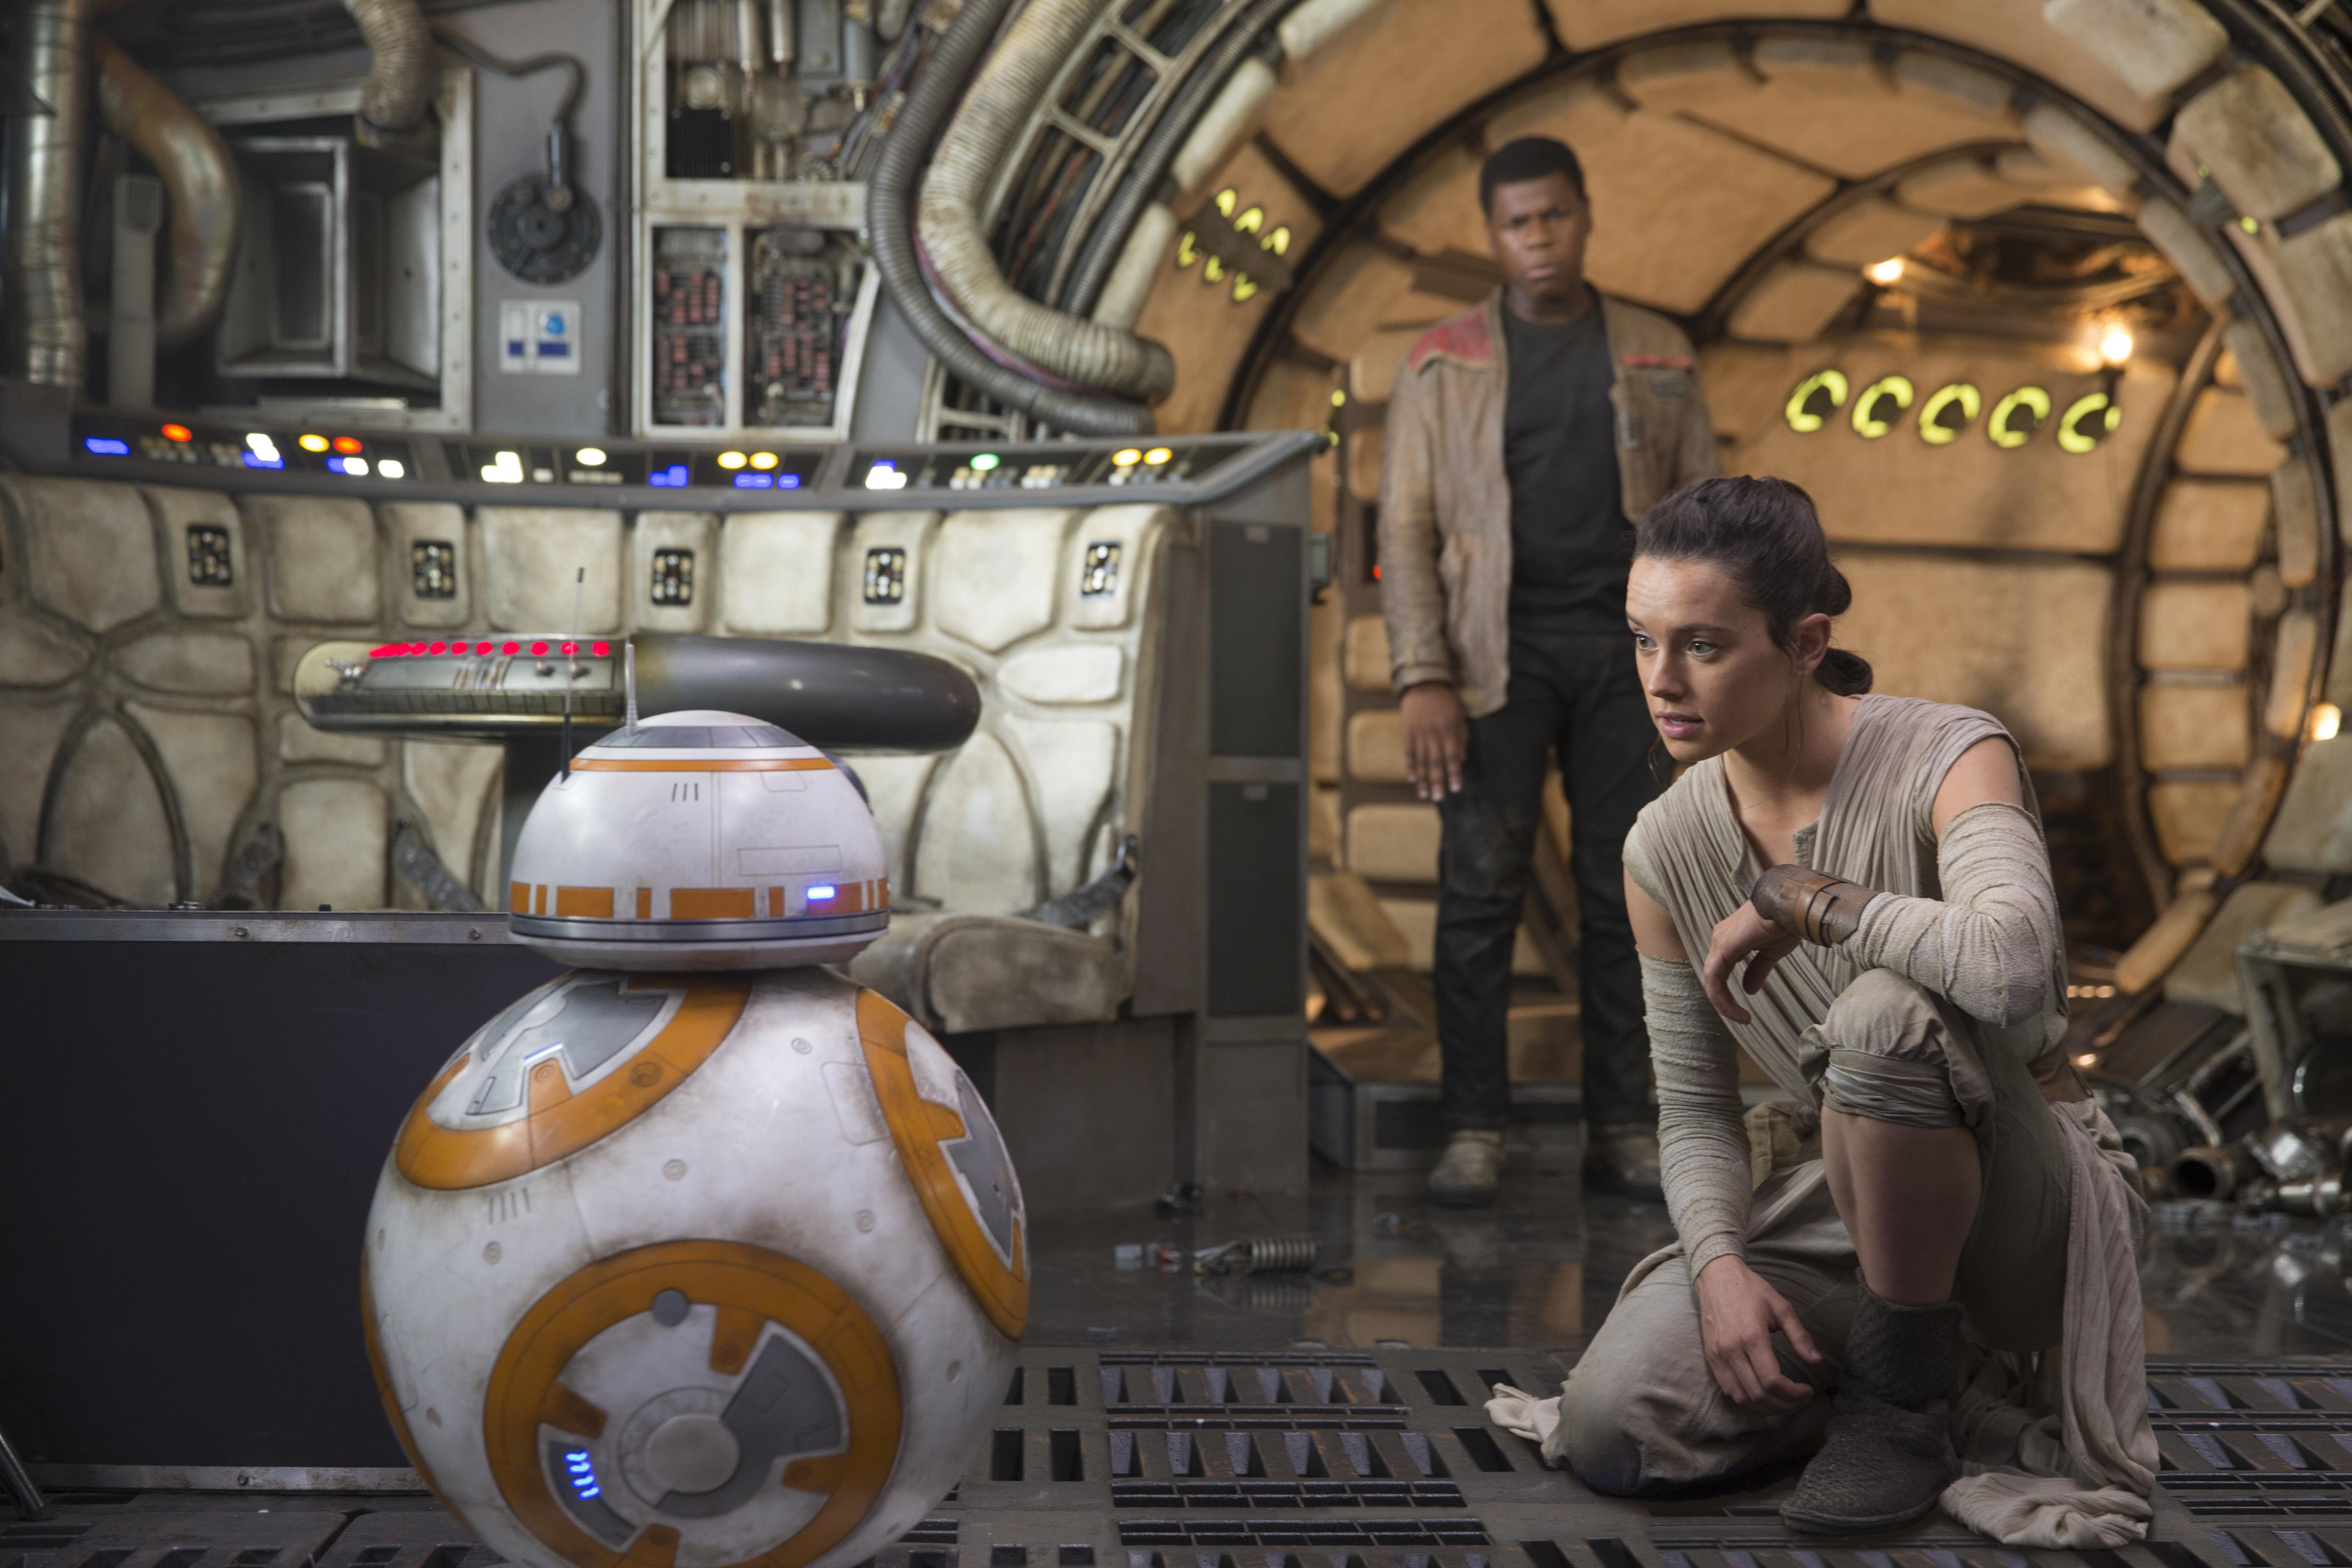 Disney all set for its summer 2019 release of 'Star Wars IX'